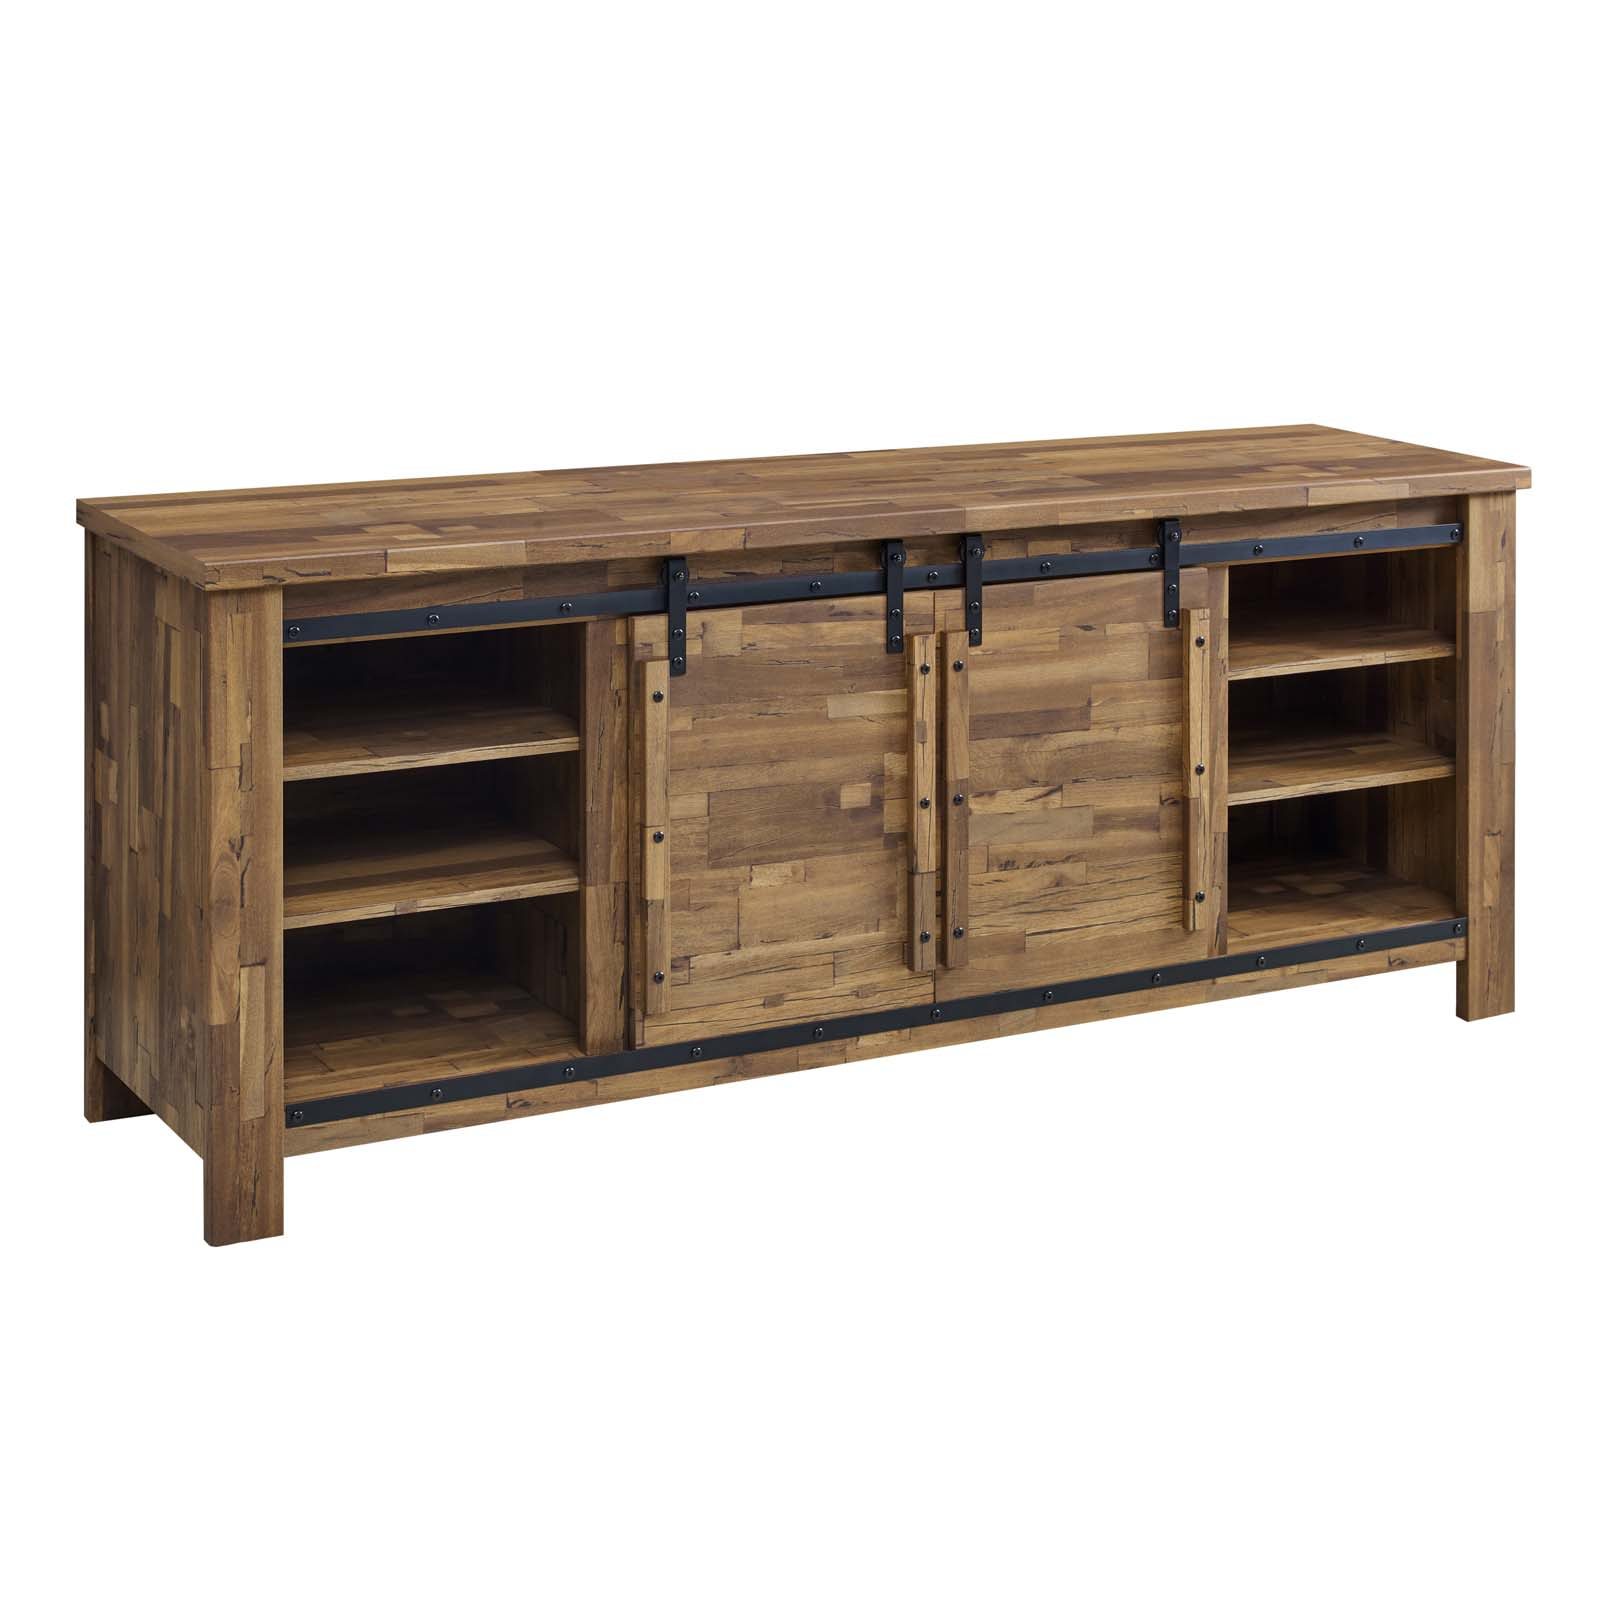 """Cheshire 70"""" Rustic Sliding Door Buffet Table Sideboard Walnut Pertaining To Rustic Walnut Buffets (View 20 of 30)"""